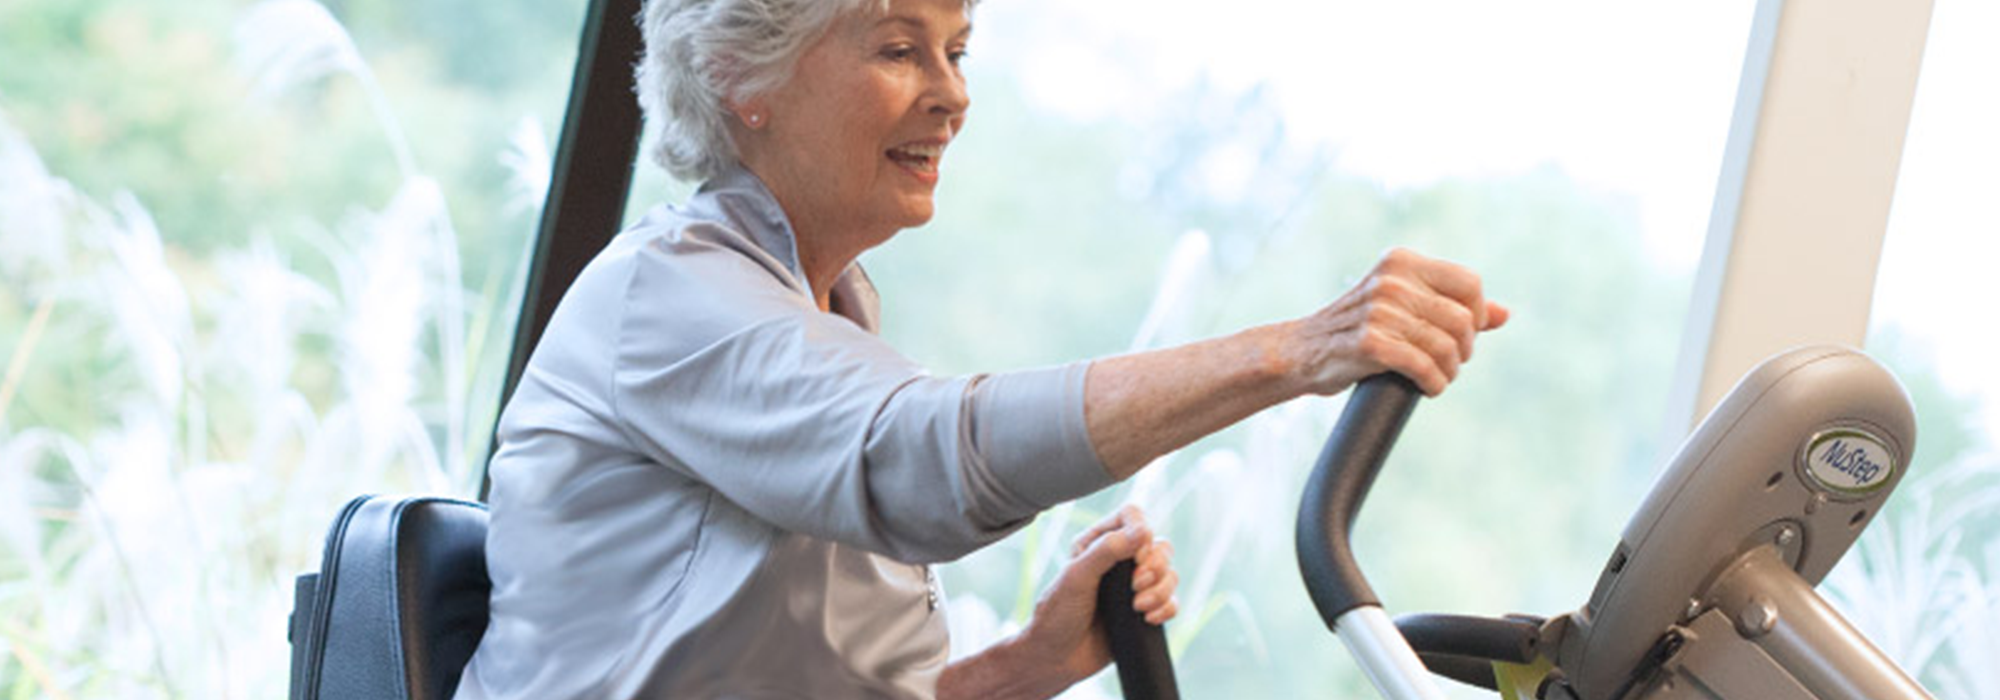 Active Aging & Rehab